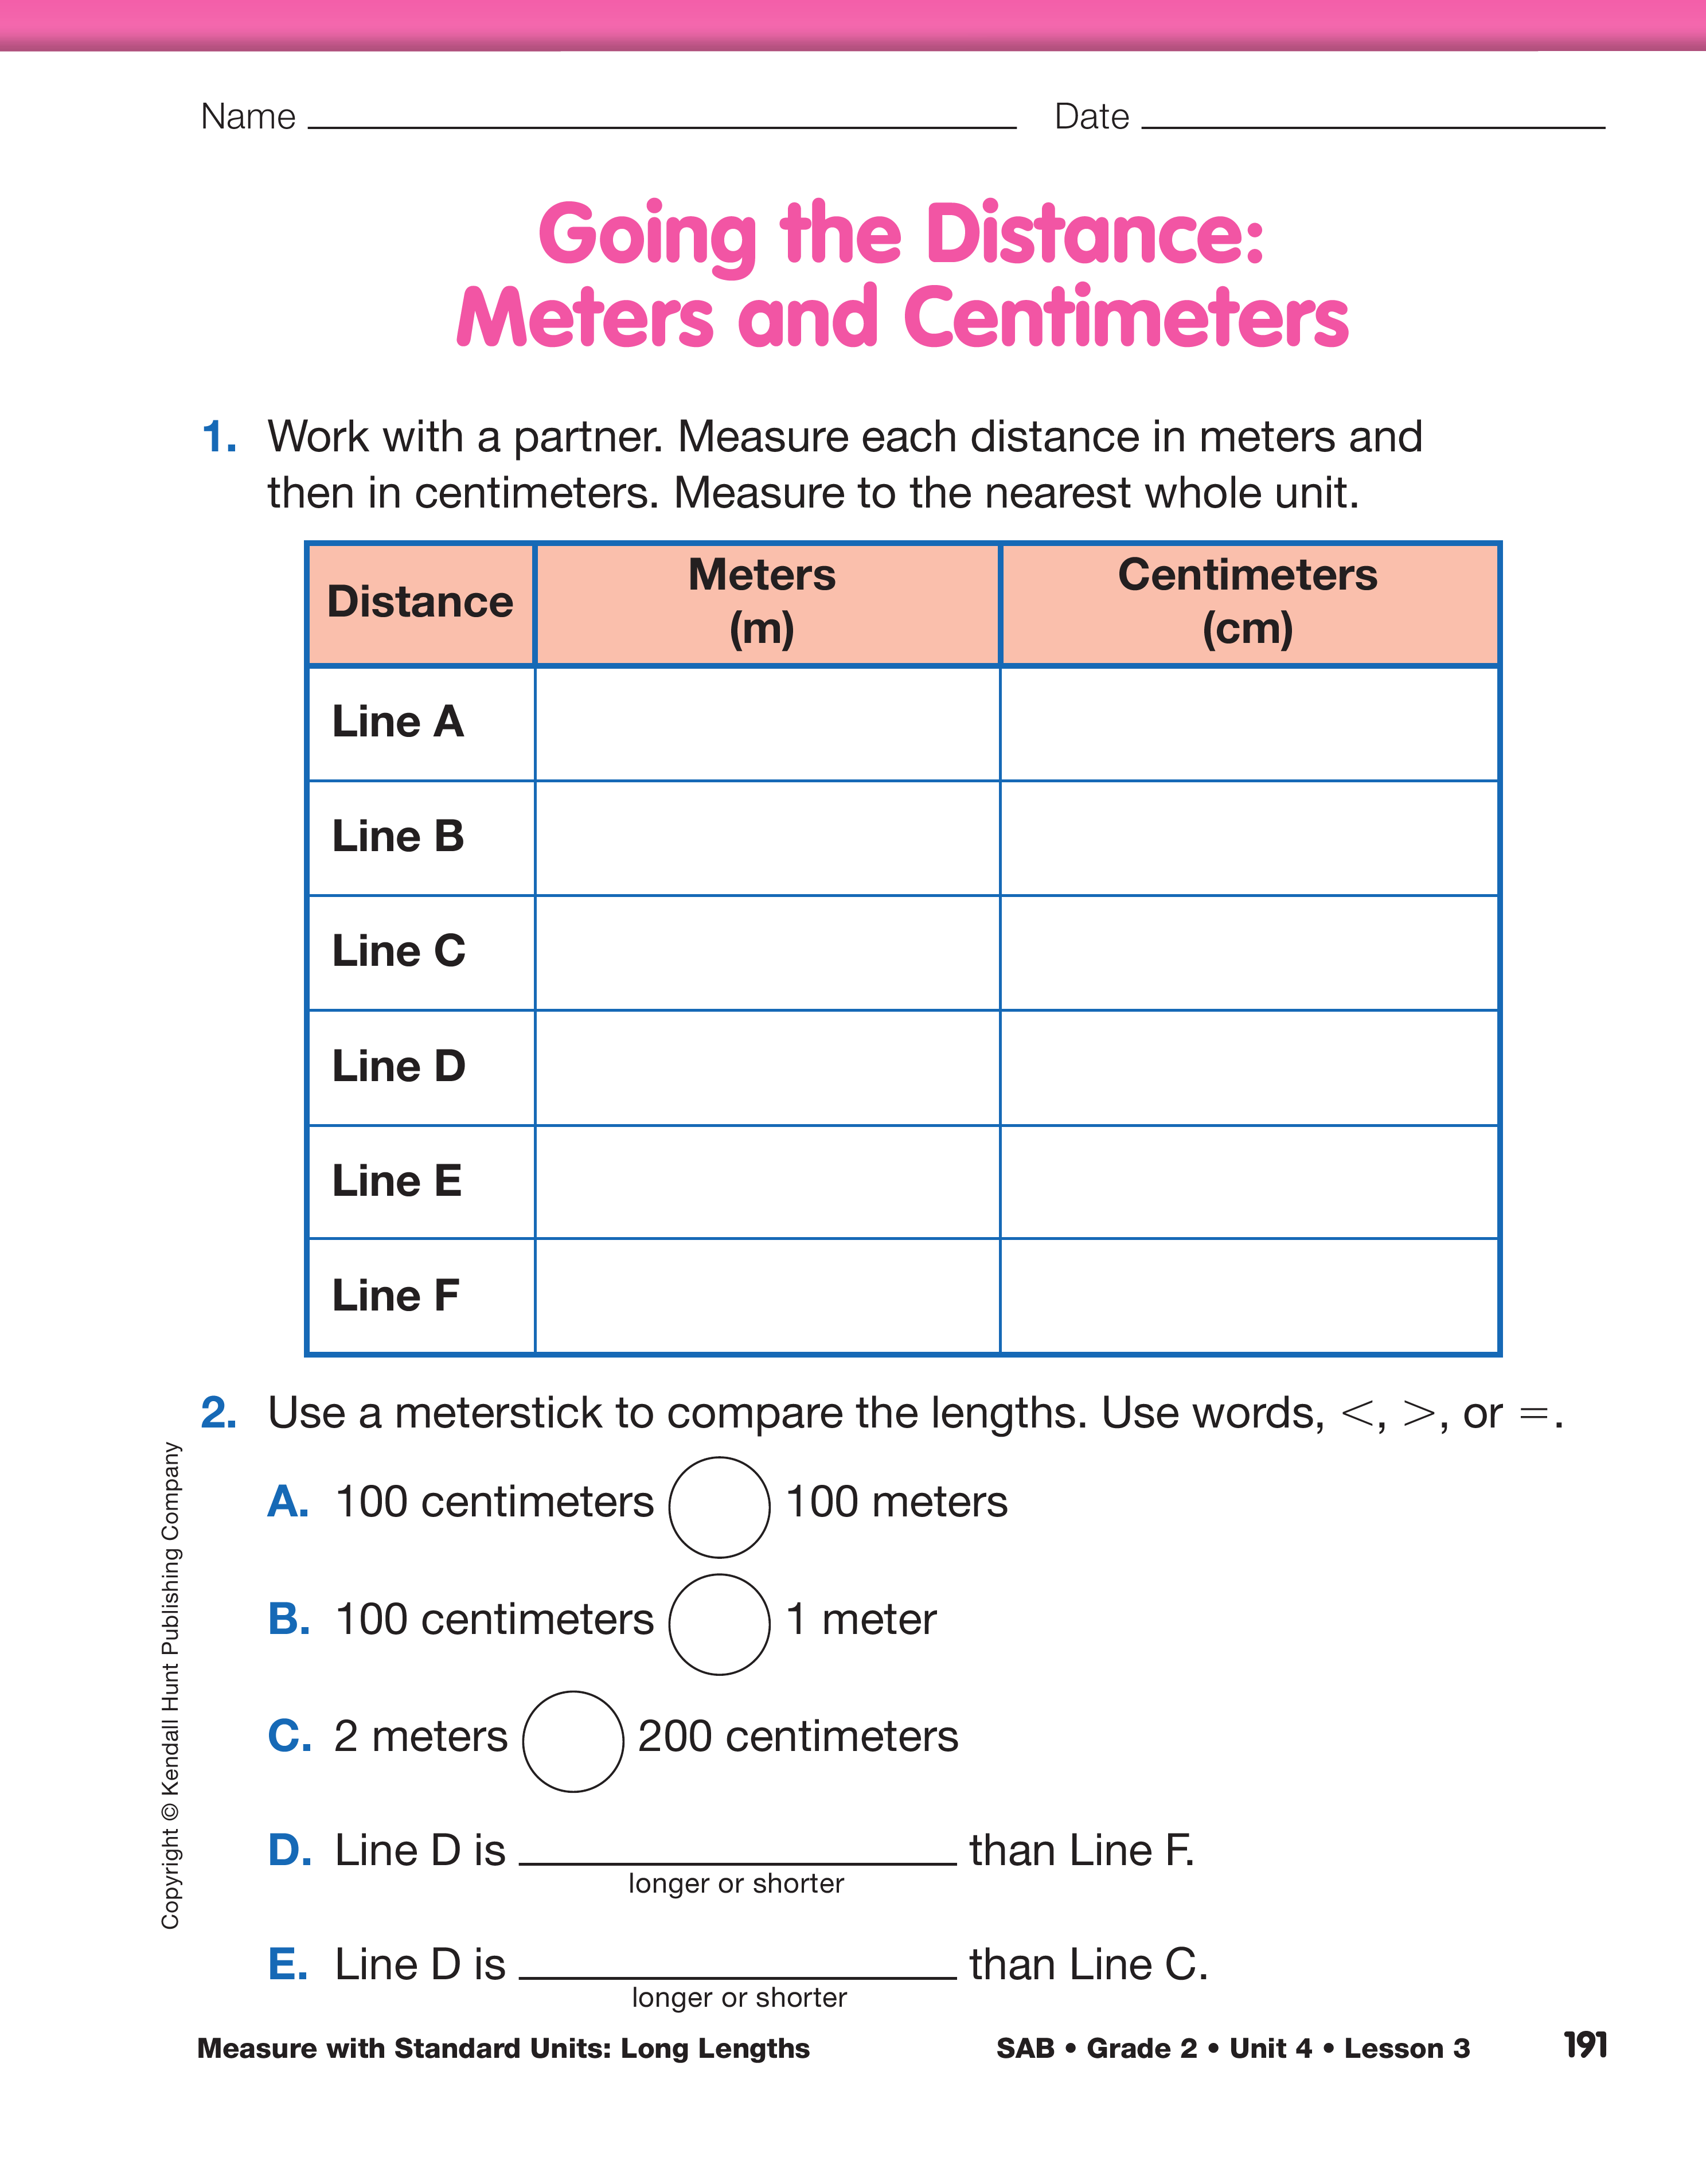 worksheet Measuring With Centimeters math trailblazers sg mini